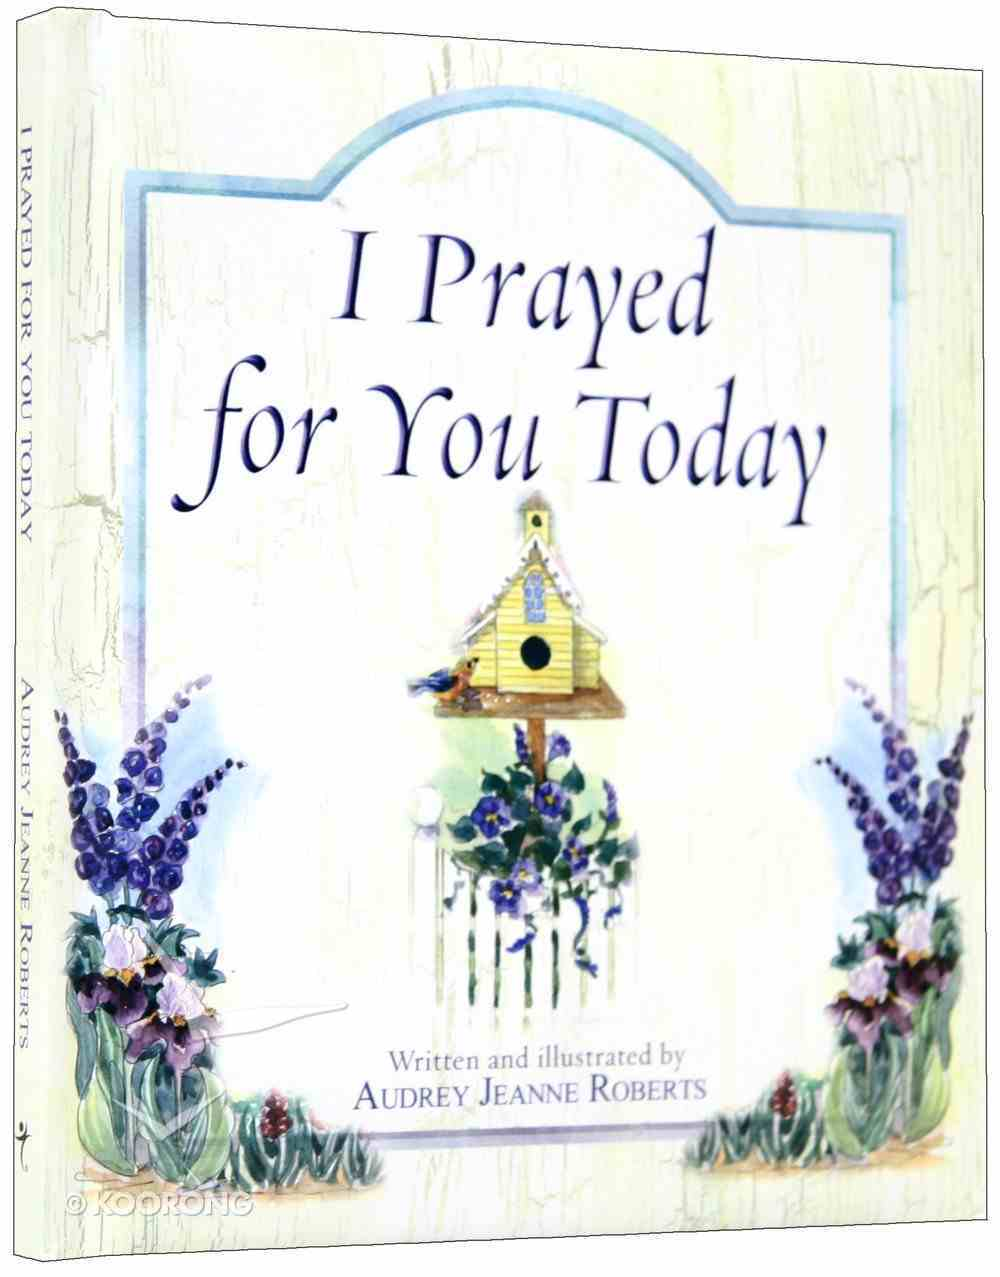 I Prayed For You Today (Spirit Lifters Gifts Series) Hardback